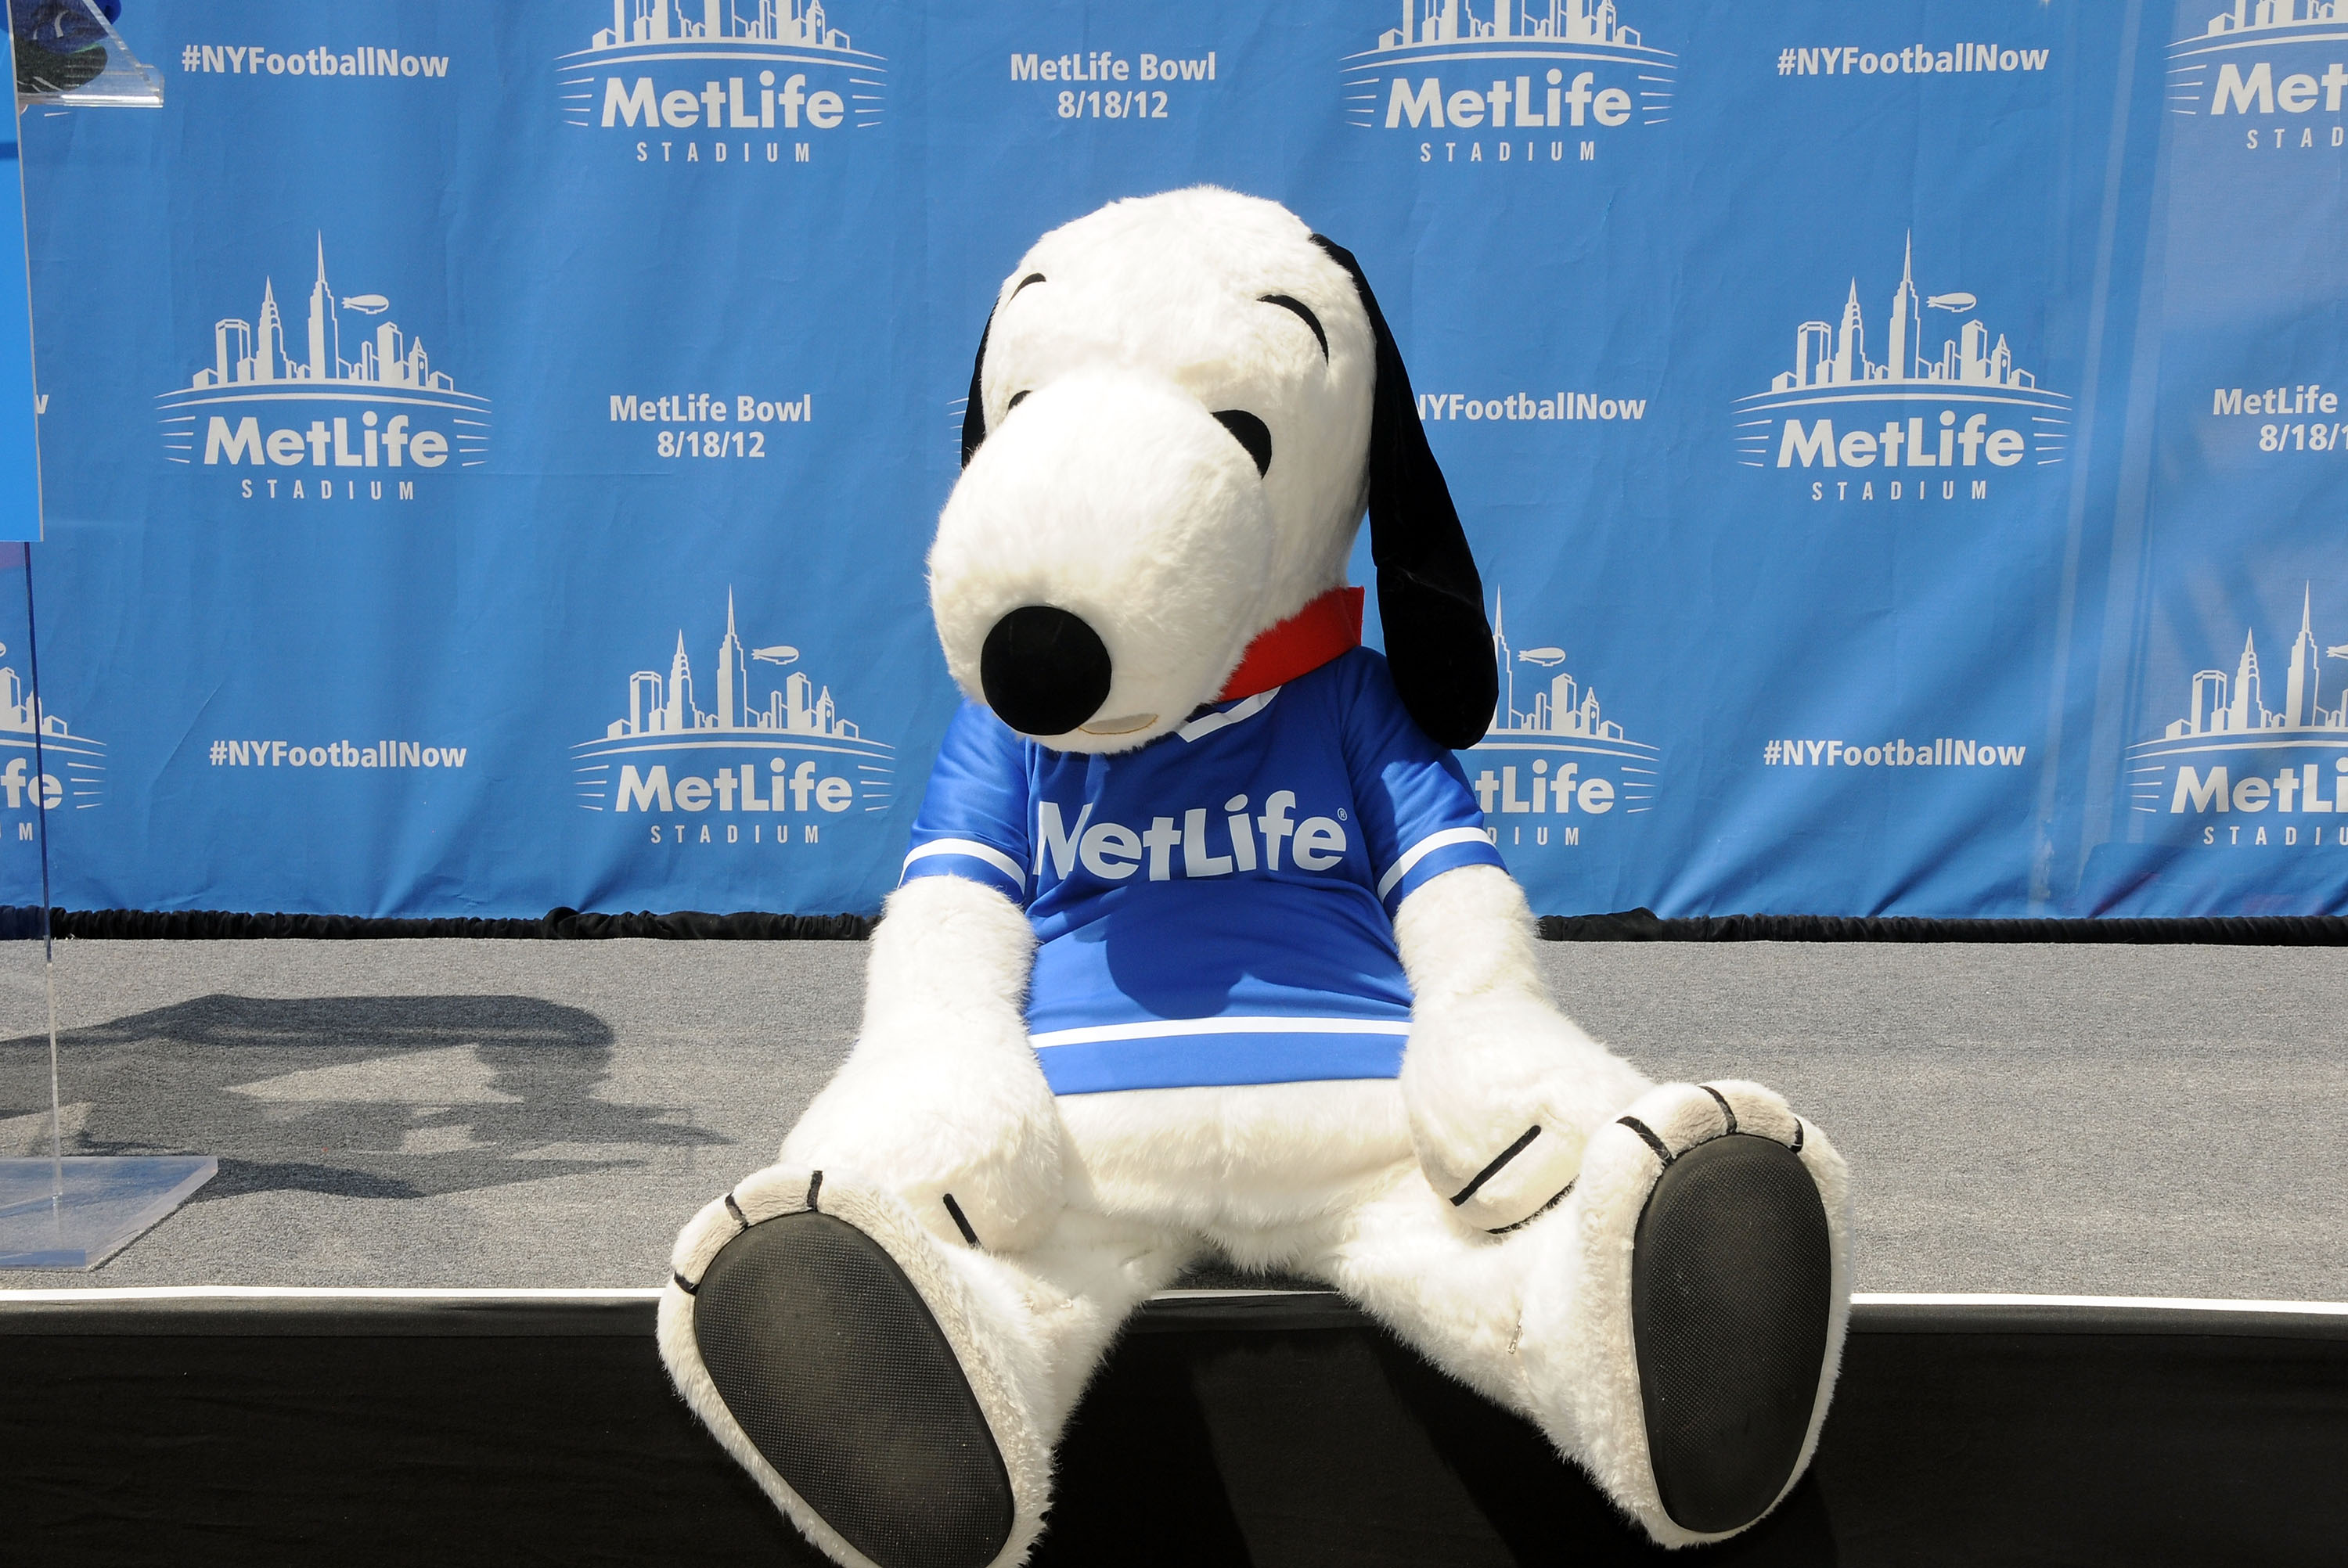 Mascot Snoopy poses at the MetLife Building on August 16, 2012 in New York City.